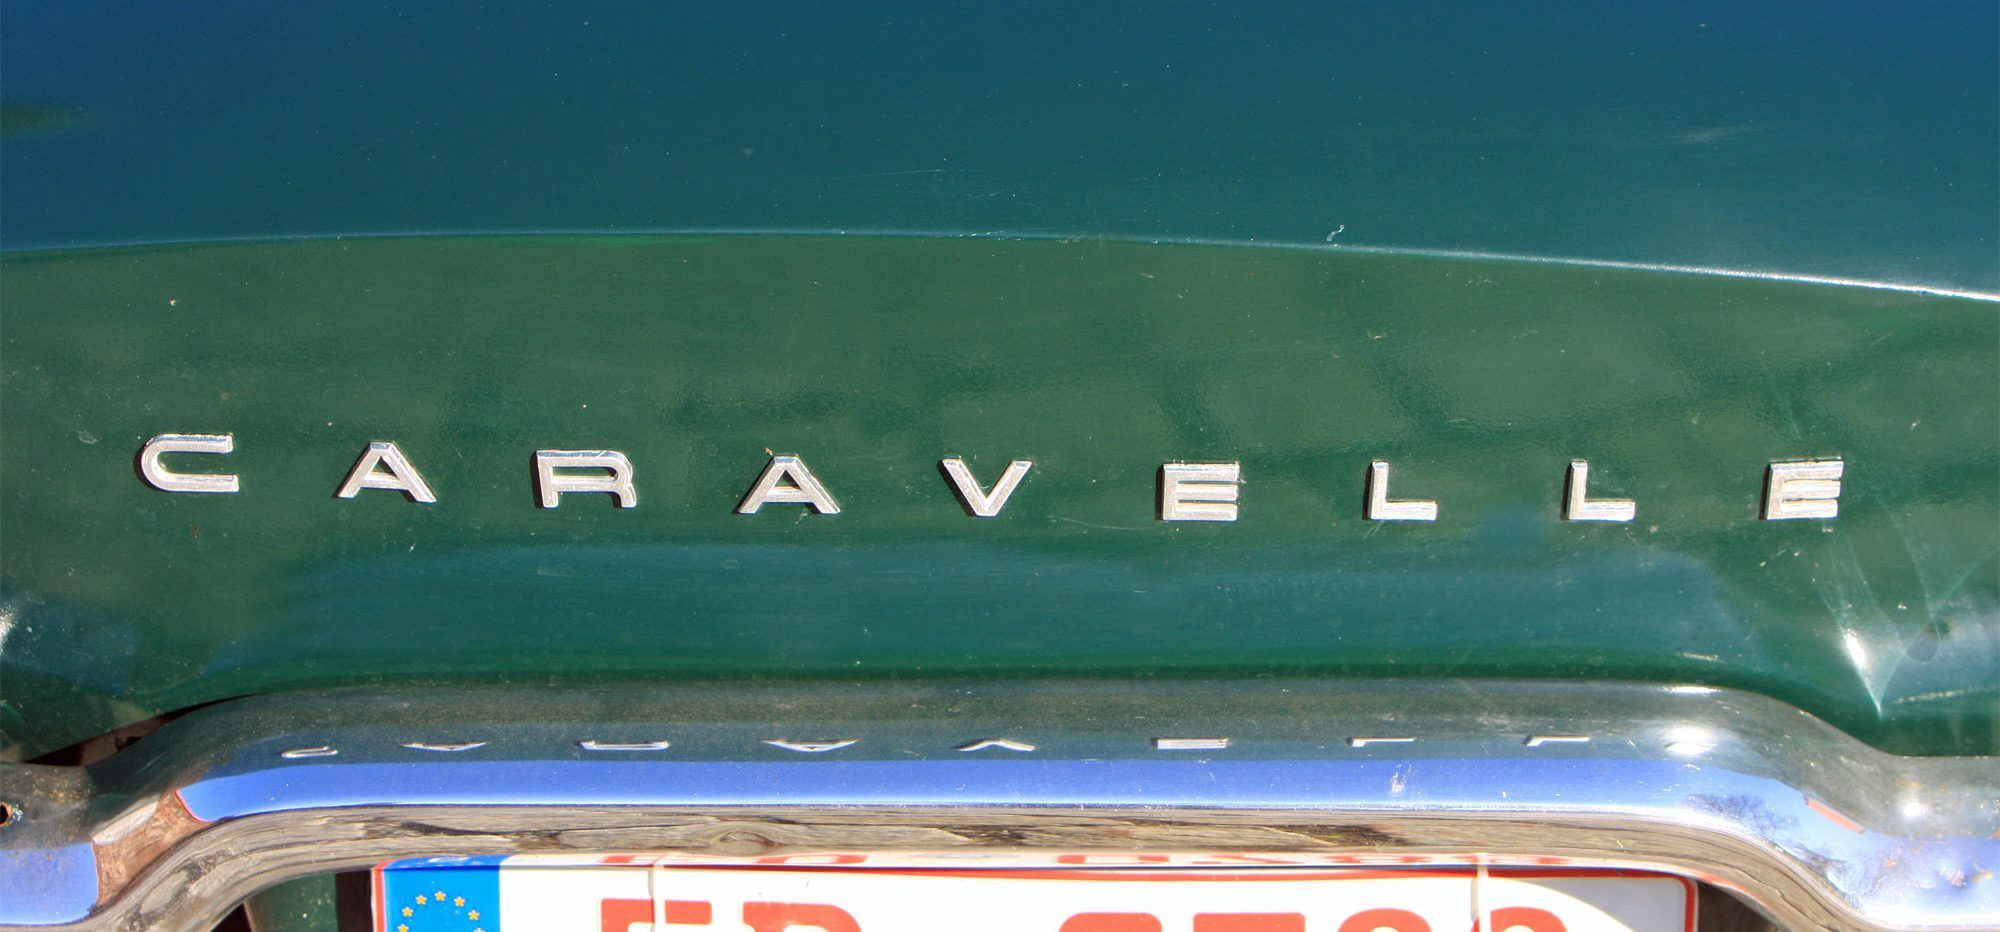 Caravelle_05